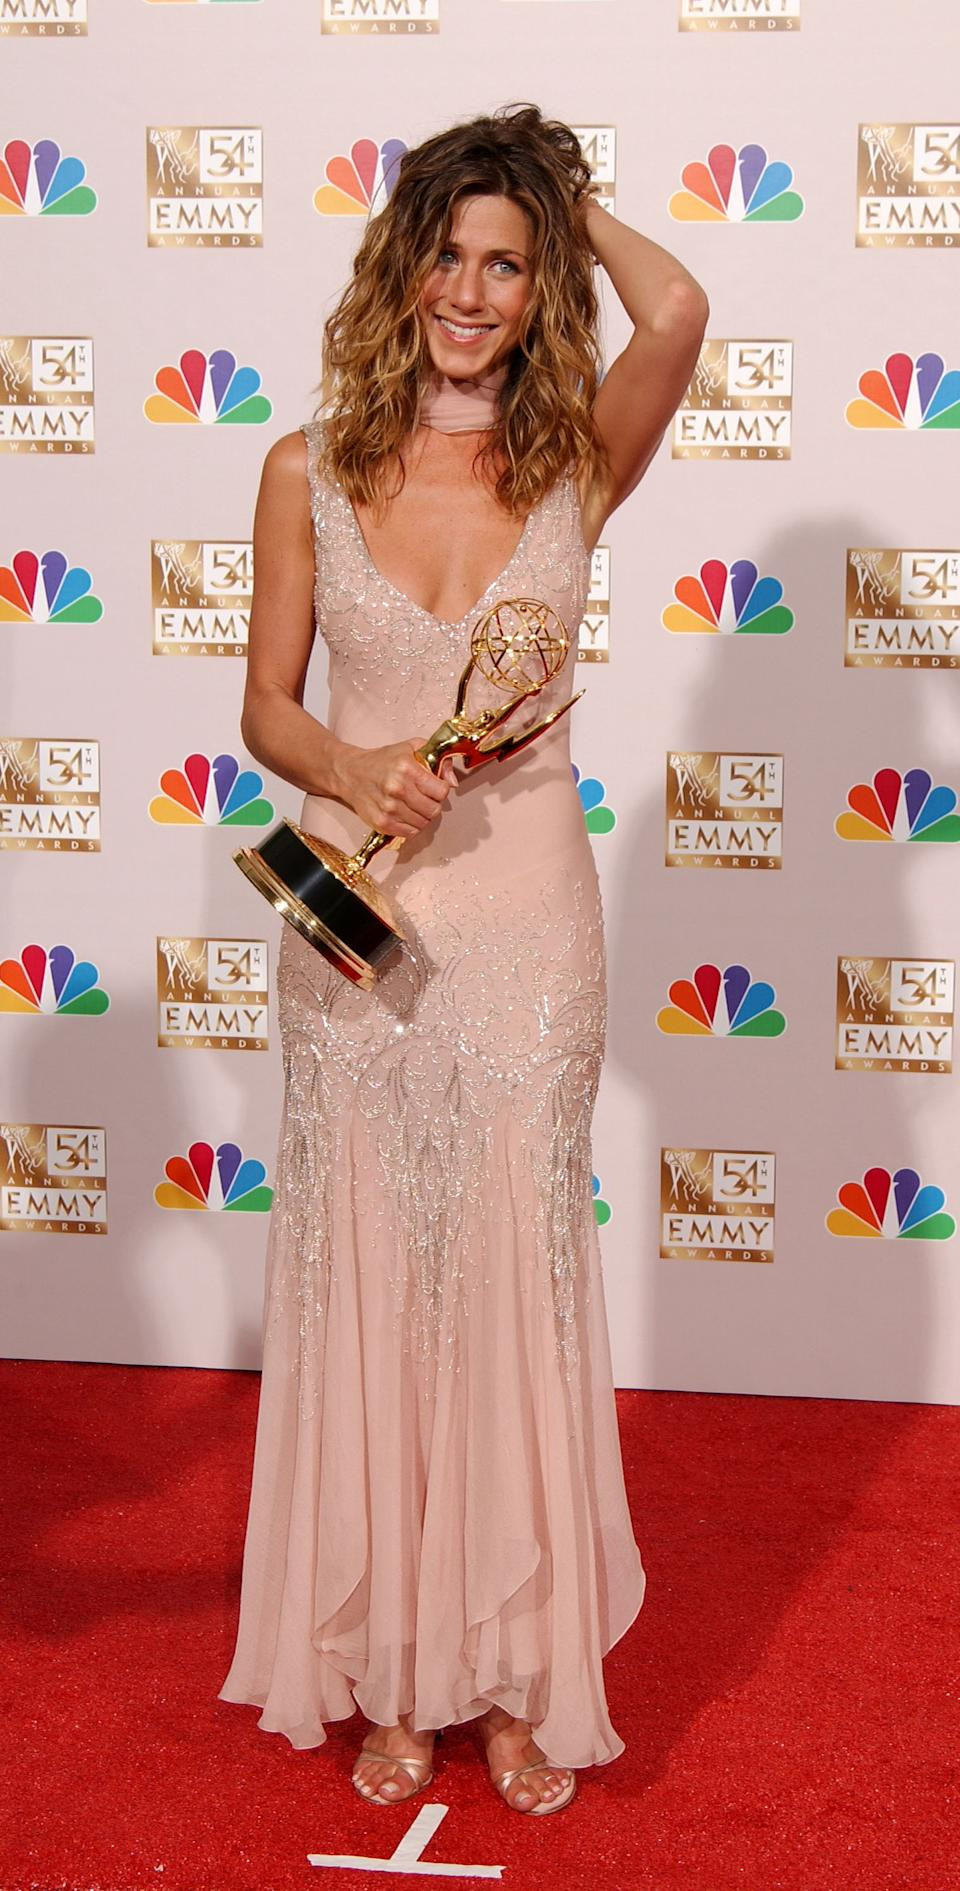 "Aniston accepted the award for ""Lead Actress in a Comedy Series"" at the 2002 Emmy Awards wearing a blush Christian Dior gown. (Photo by Robert Mora/Getty Images)"